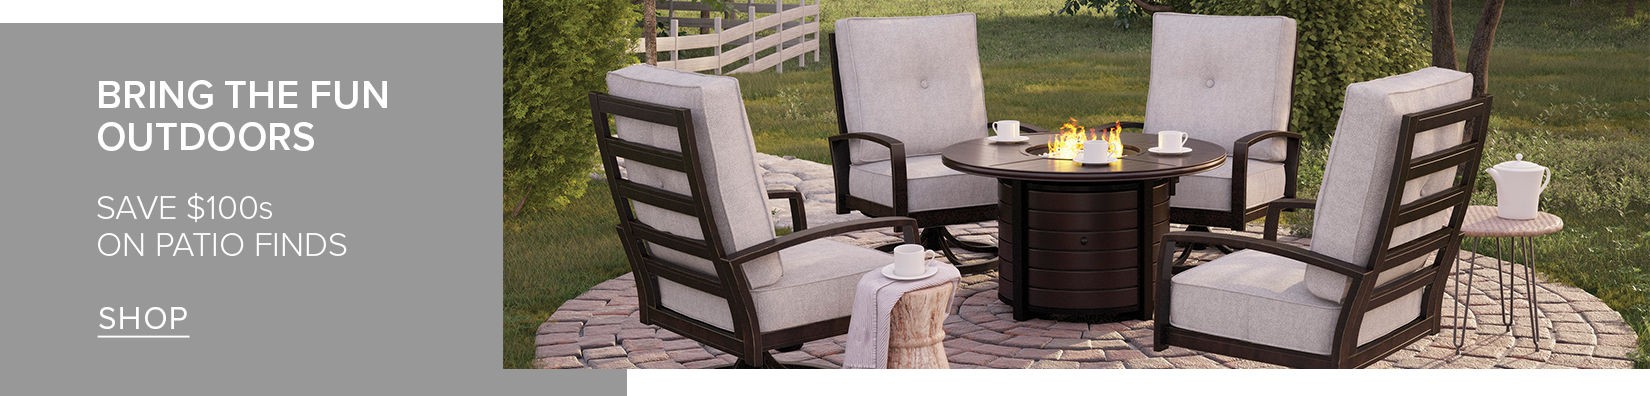 Bring the Fun Outdoors | Save $100s on Patio Finds